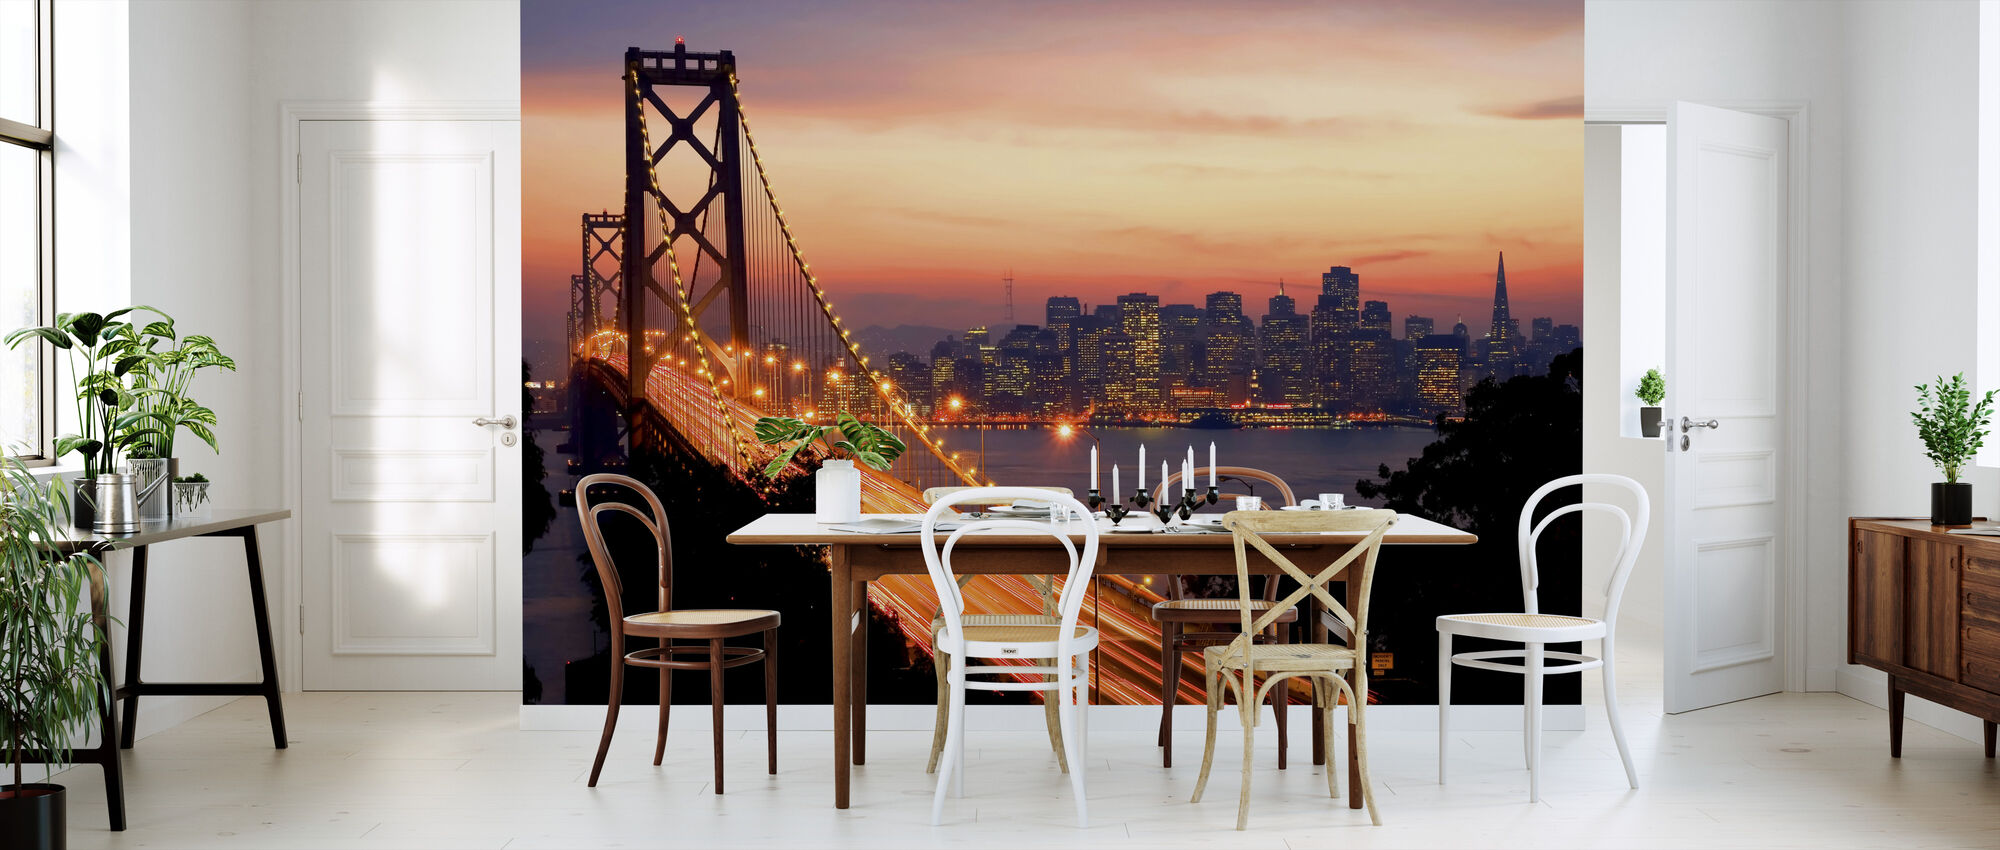 San Francisco, California, USA - Wallpaper - Kitchen